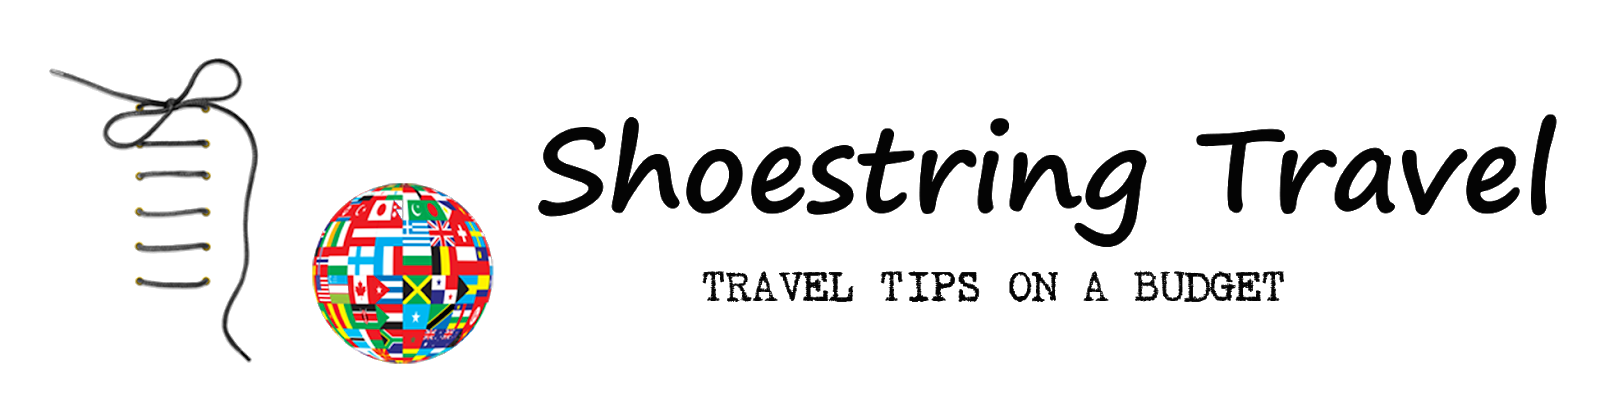 Shoestring Travel : Travel Blog for Travel Tips on Budget